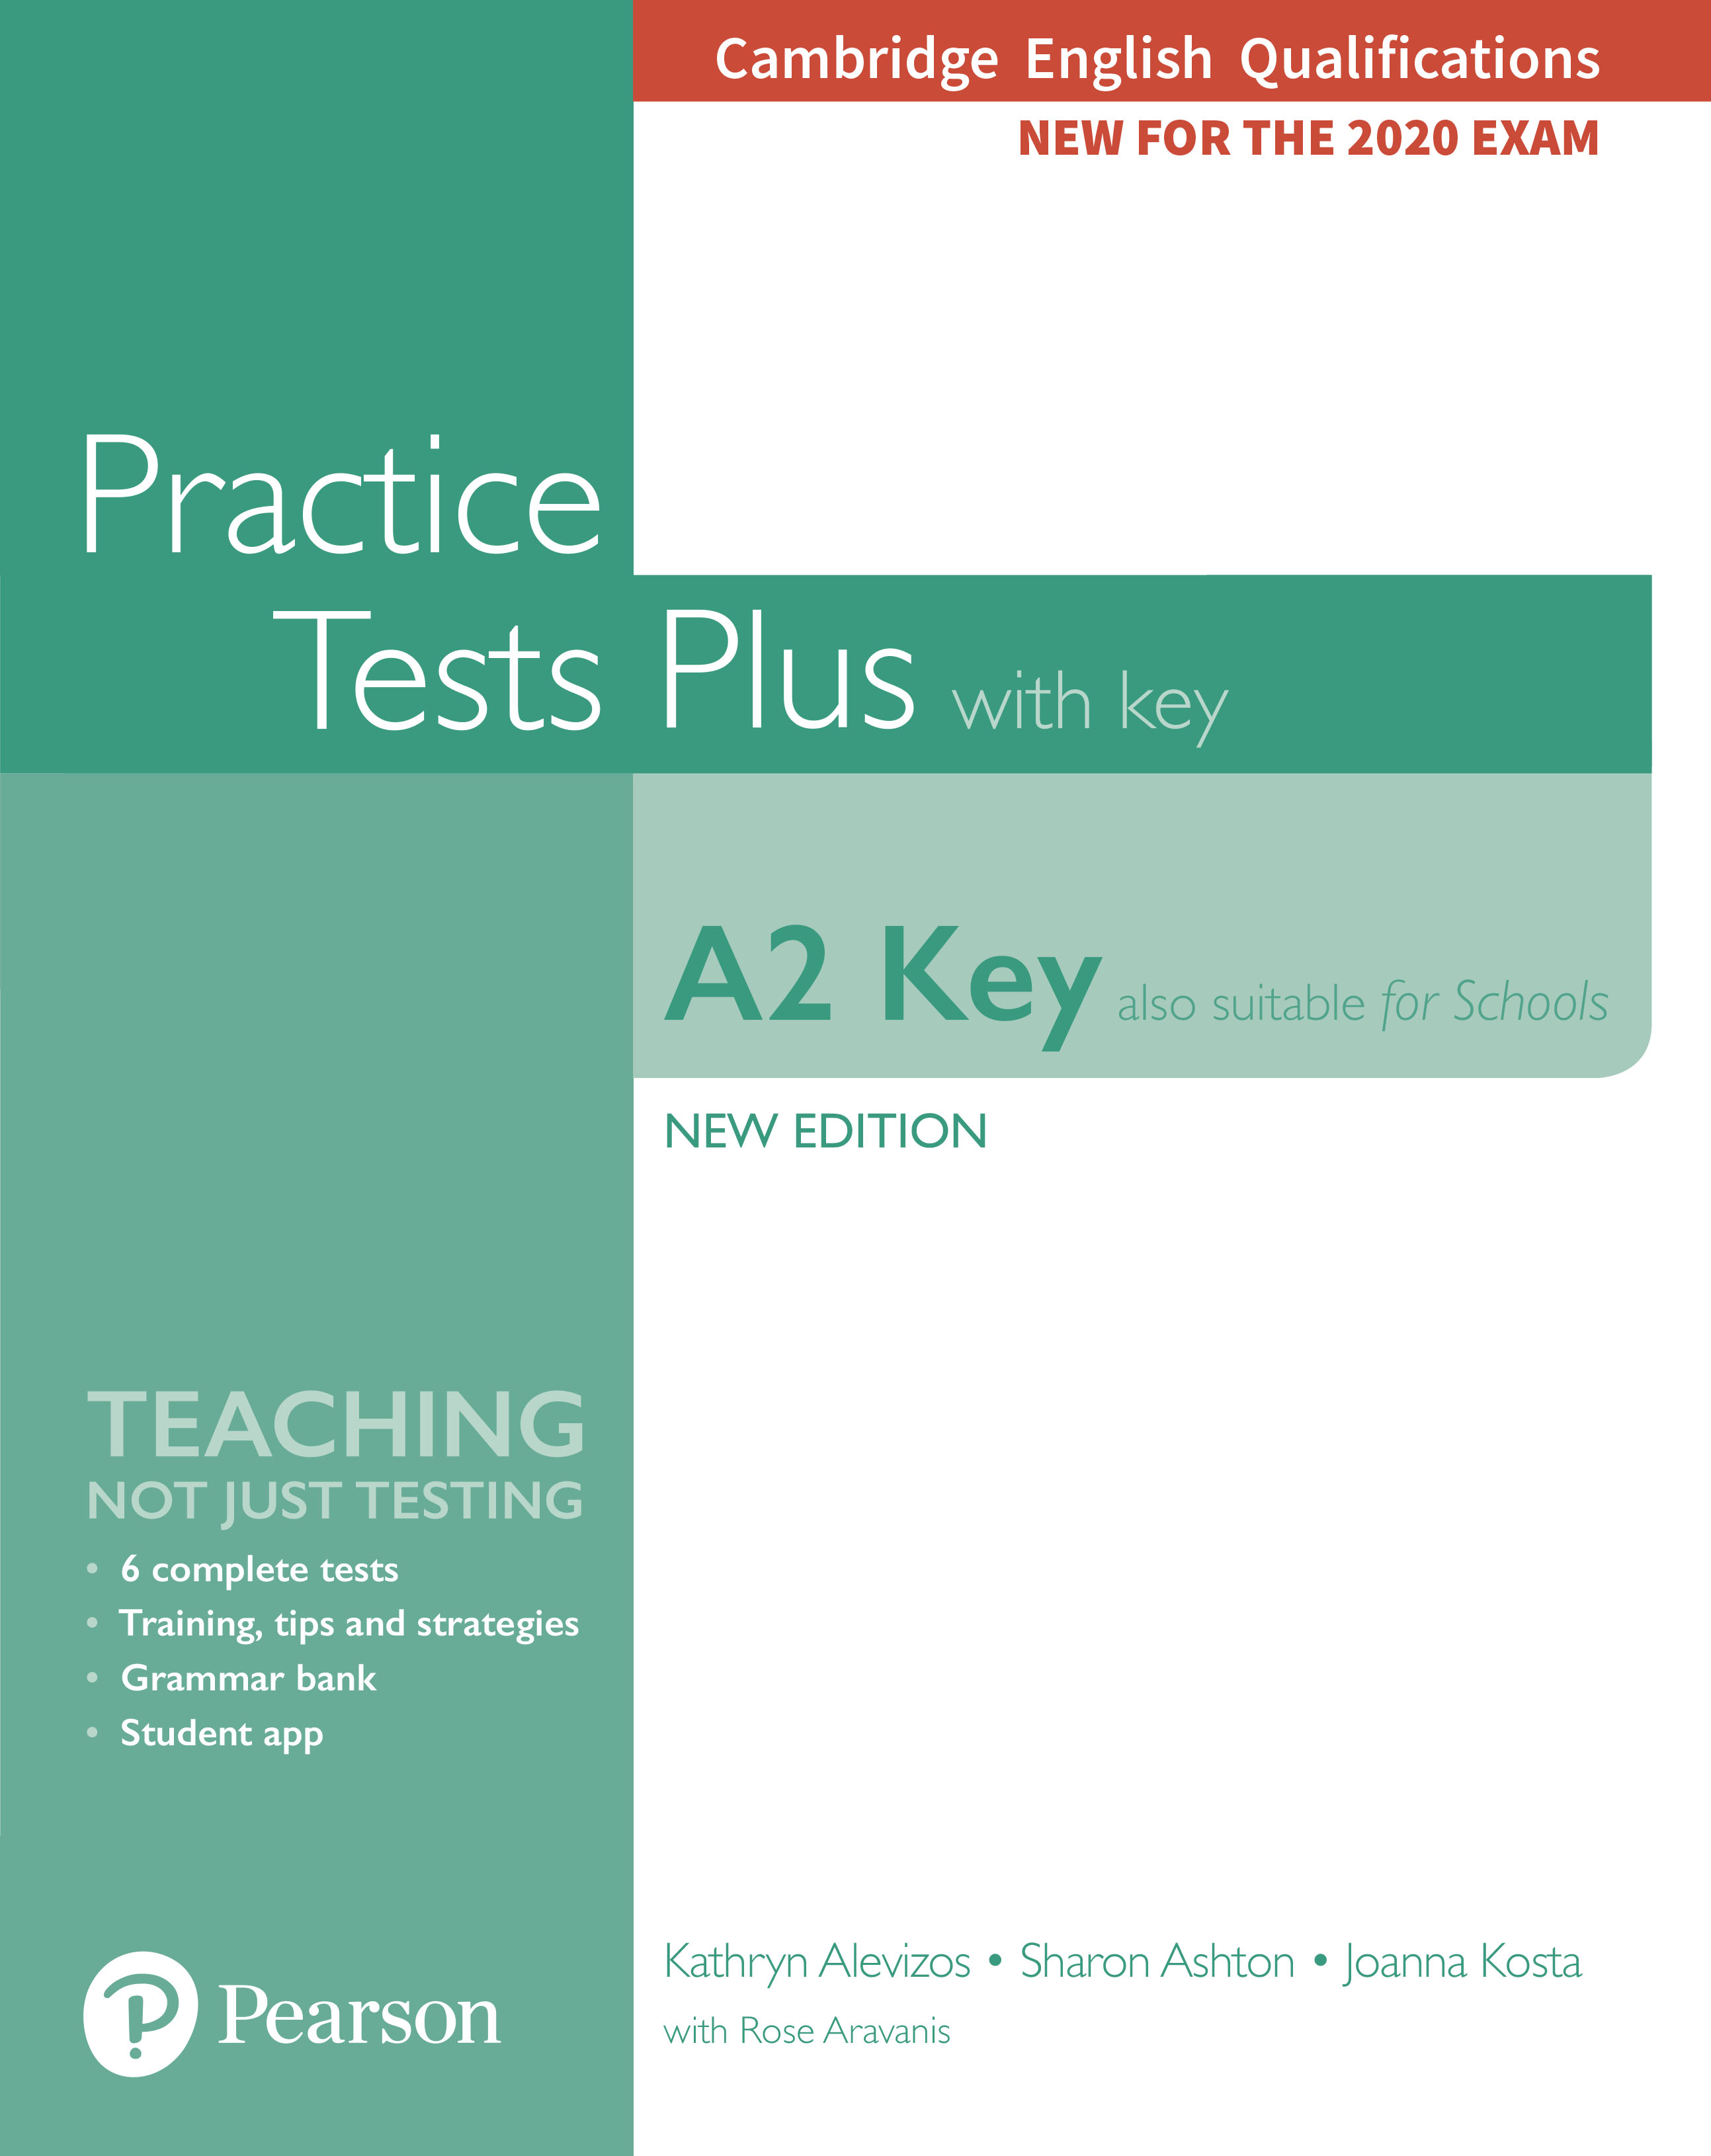 practice tests plus A2